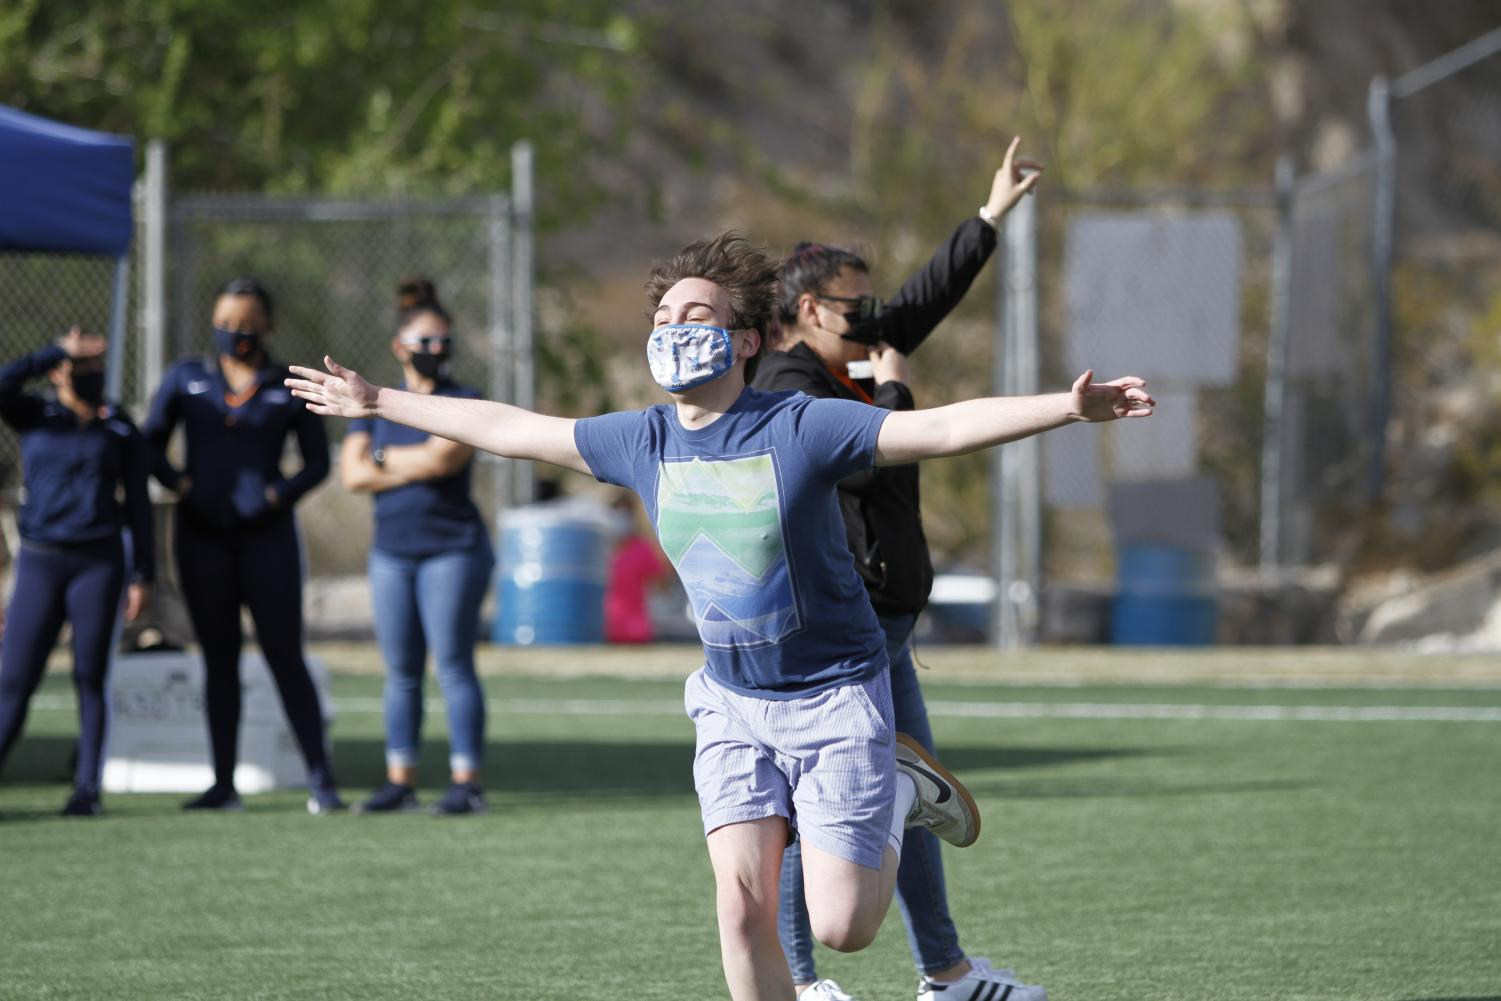 UTEP+hosts+Spring+Fest%2C+the+semester%E2%80%99s+largest+in-person+event+yet